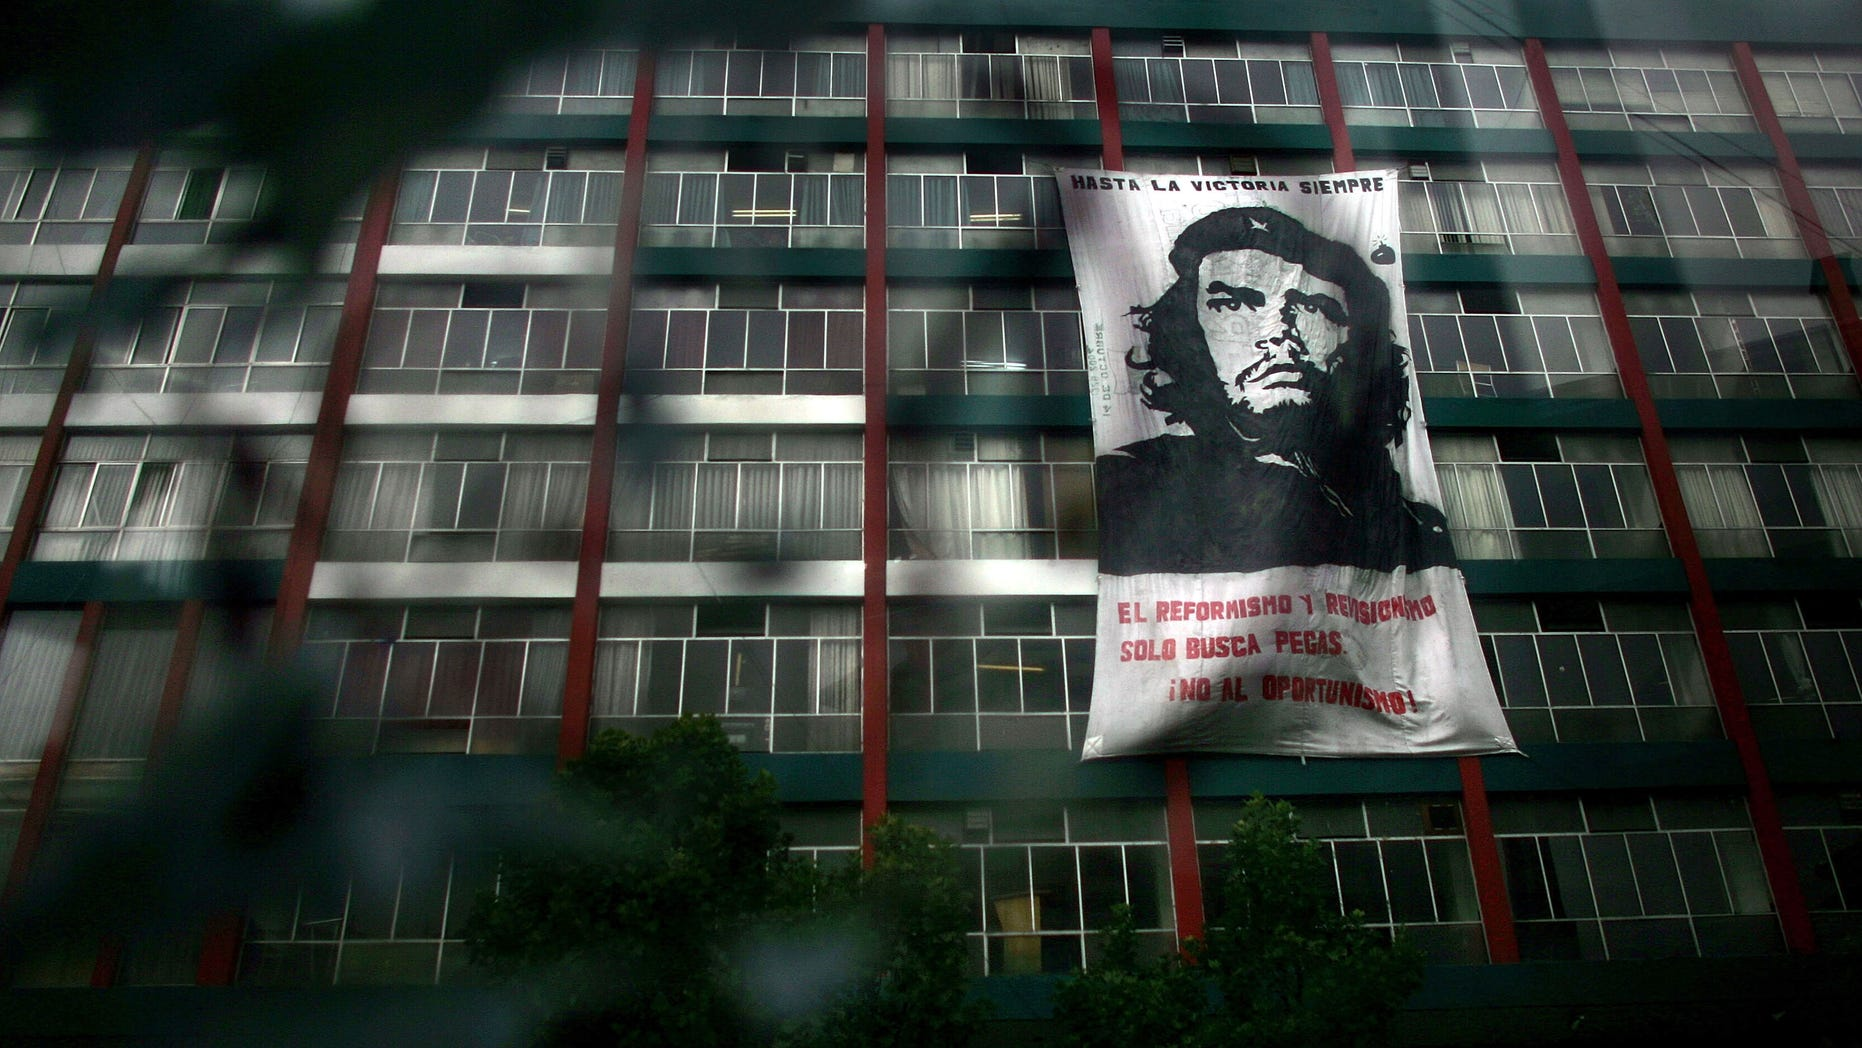 Dec 19:  A picture of Che Guevara, the revolutionarily figure who was killed by the Bolivian Military in 1967, hangs from a building.